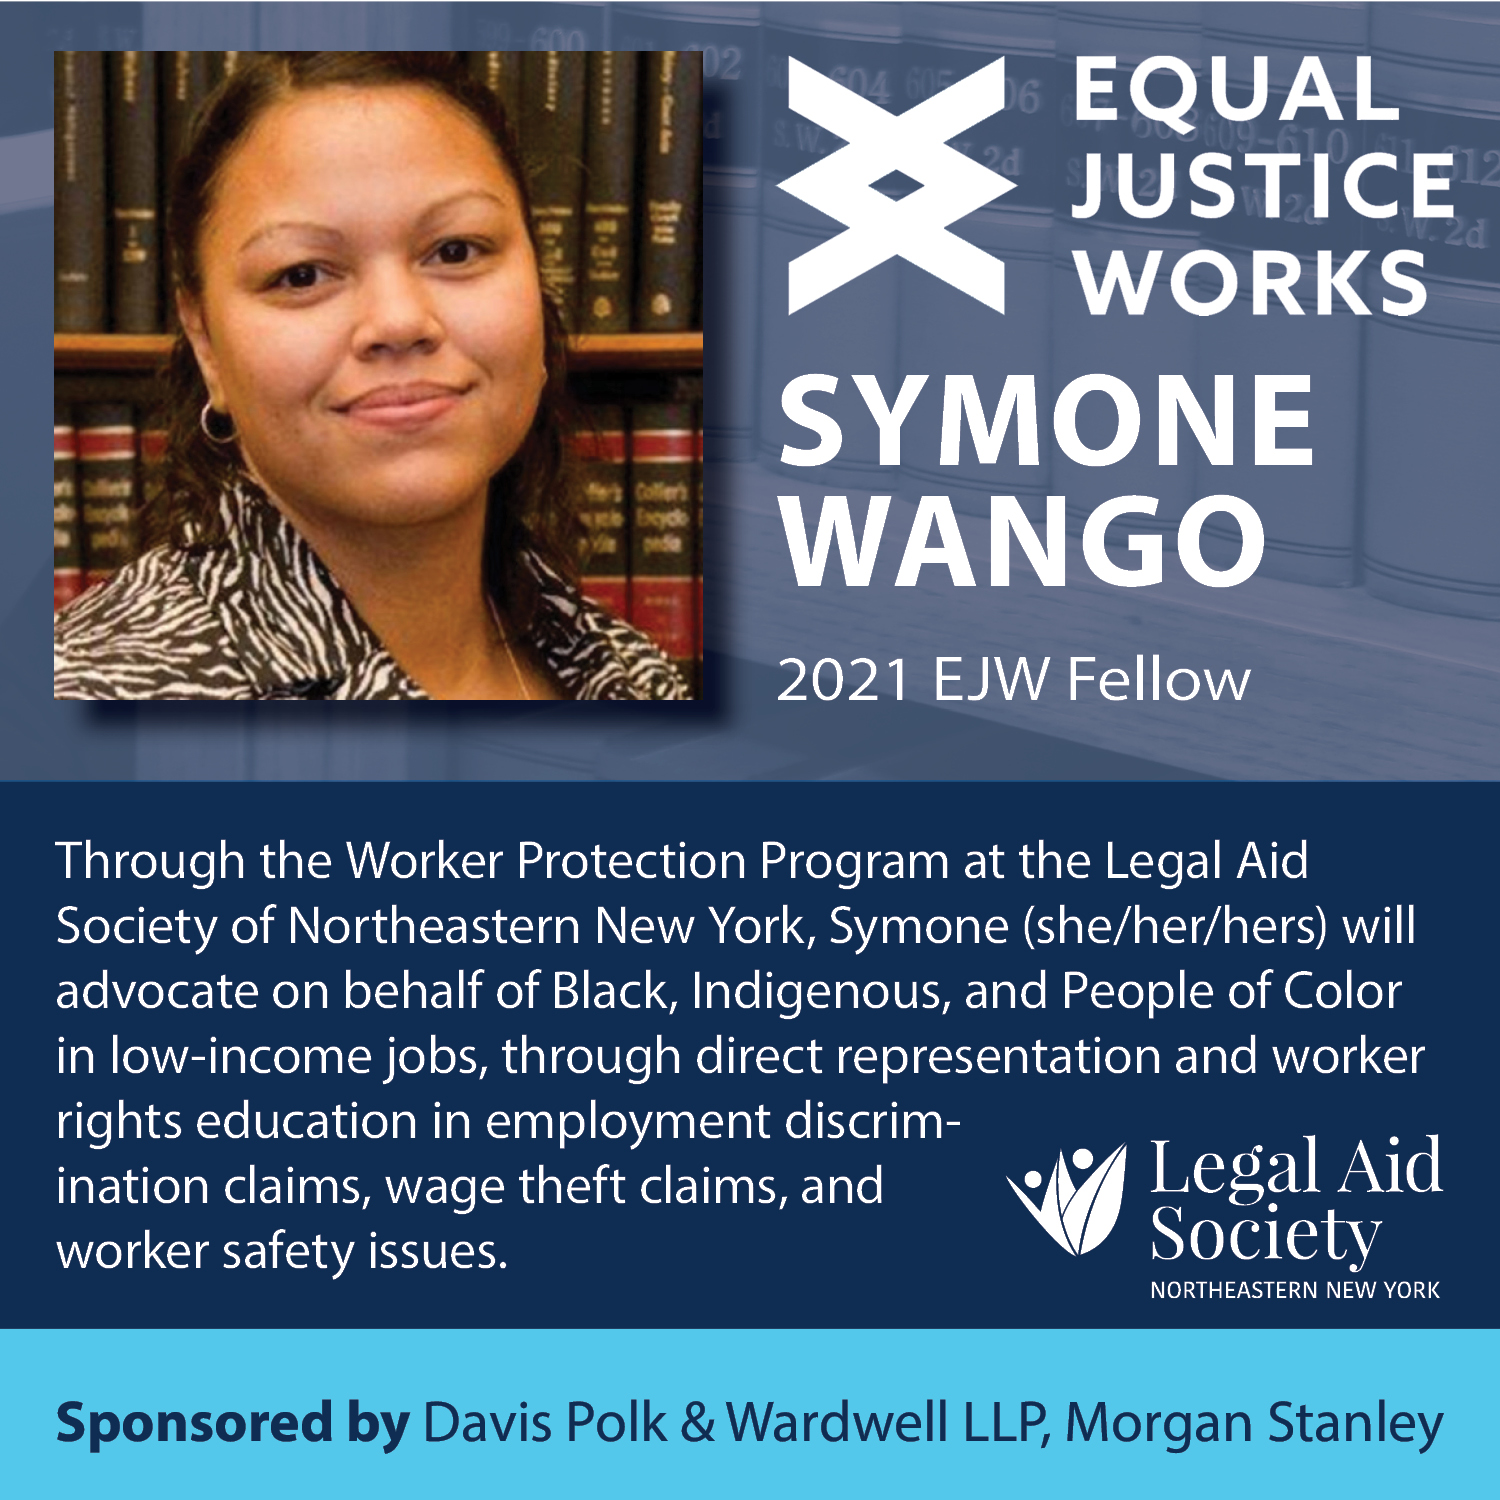 LASNNY welcomes Equal Justice Works 2021 Fellow Symone Wango